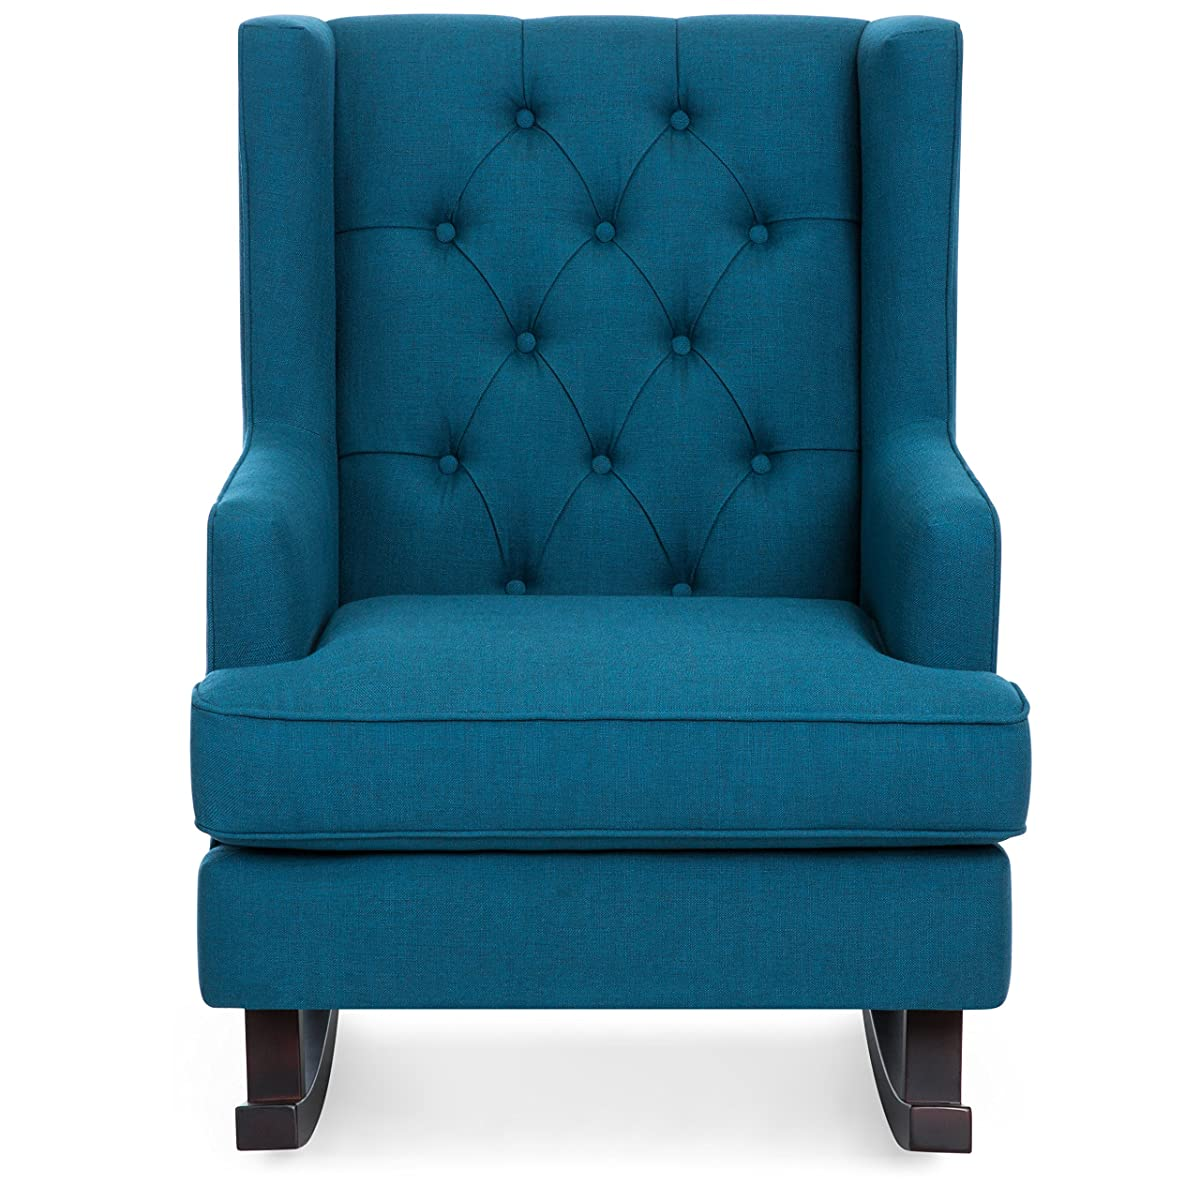 Best Choice Products Tufted Upholstered Wingback Rocking Accent Chair, Living Room, Bedroom w/Wood Frame - Blue Teal